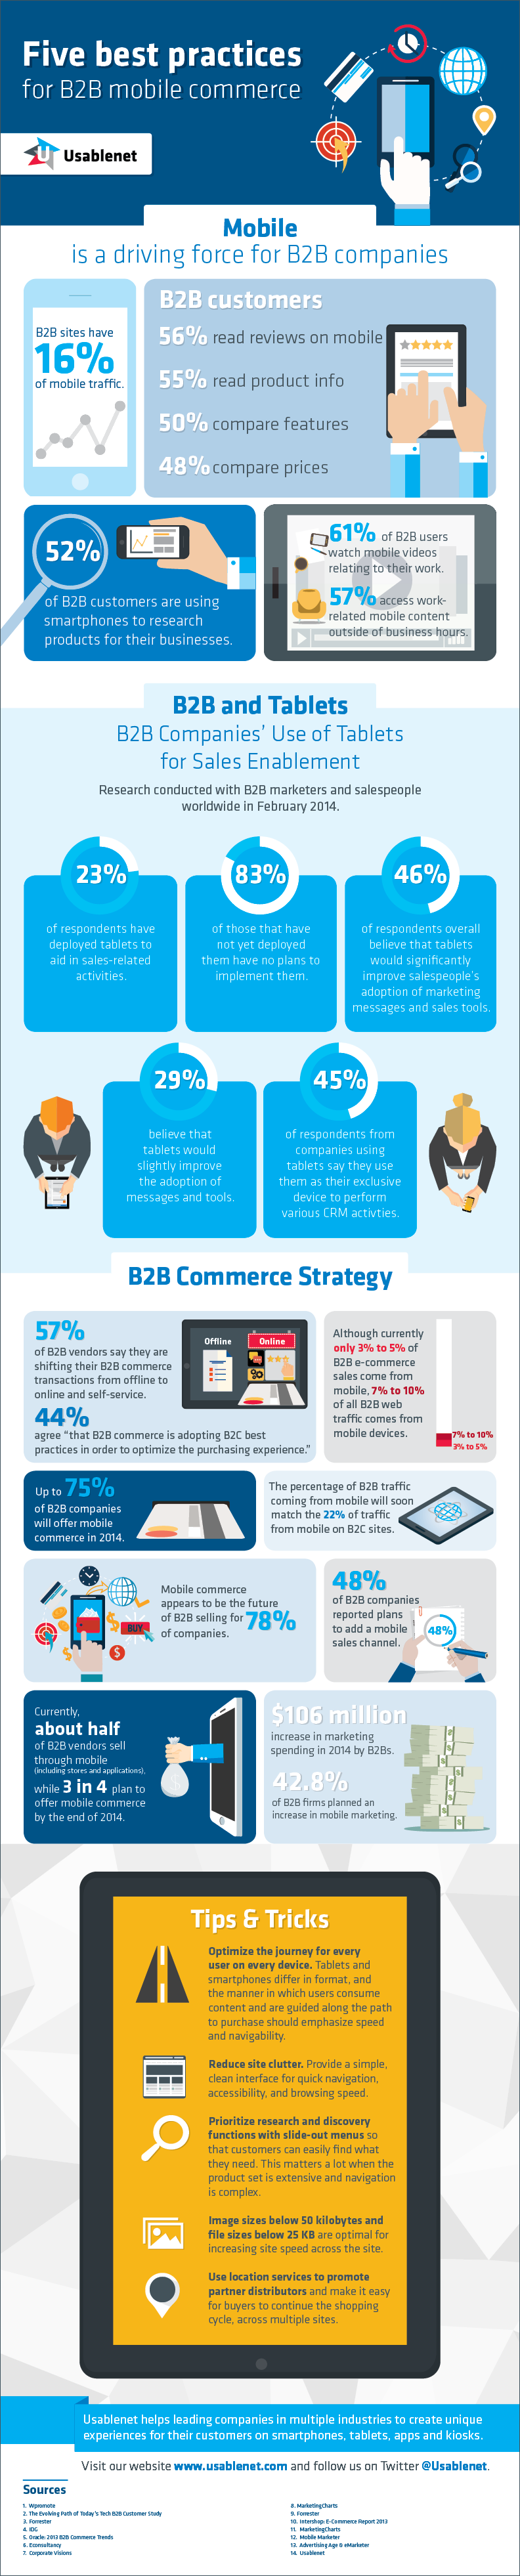 B2B Mobile Commerce Infographic